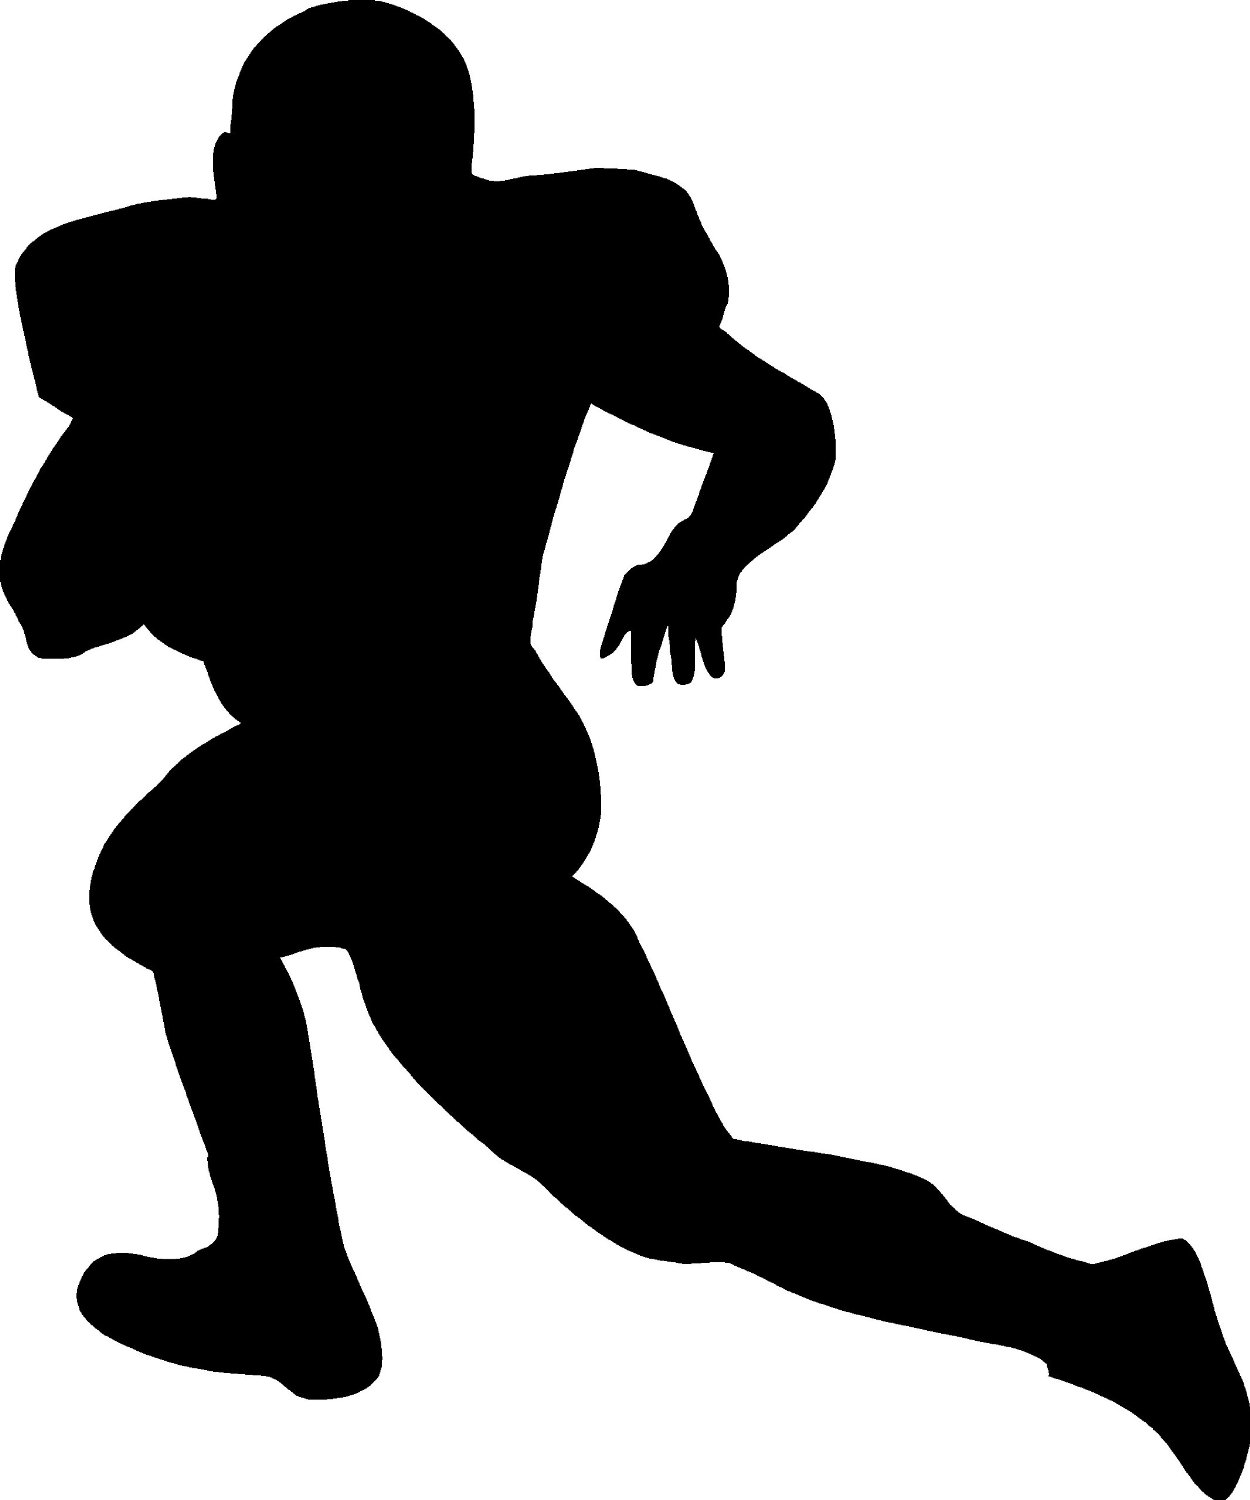 Football clipart shadow, Football shadow Transparent FREE.